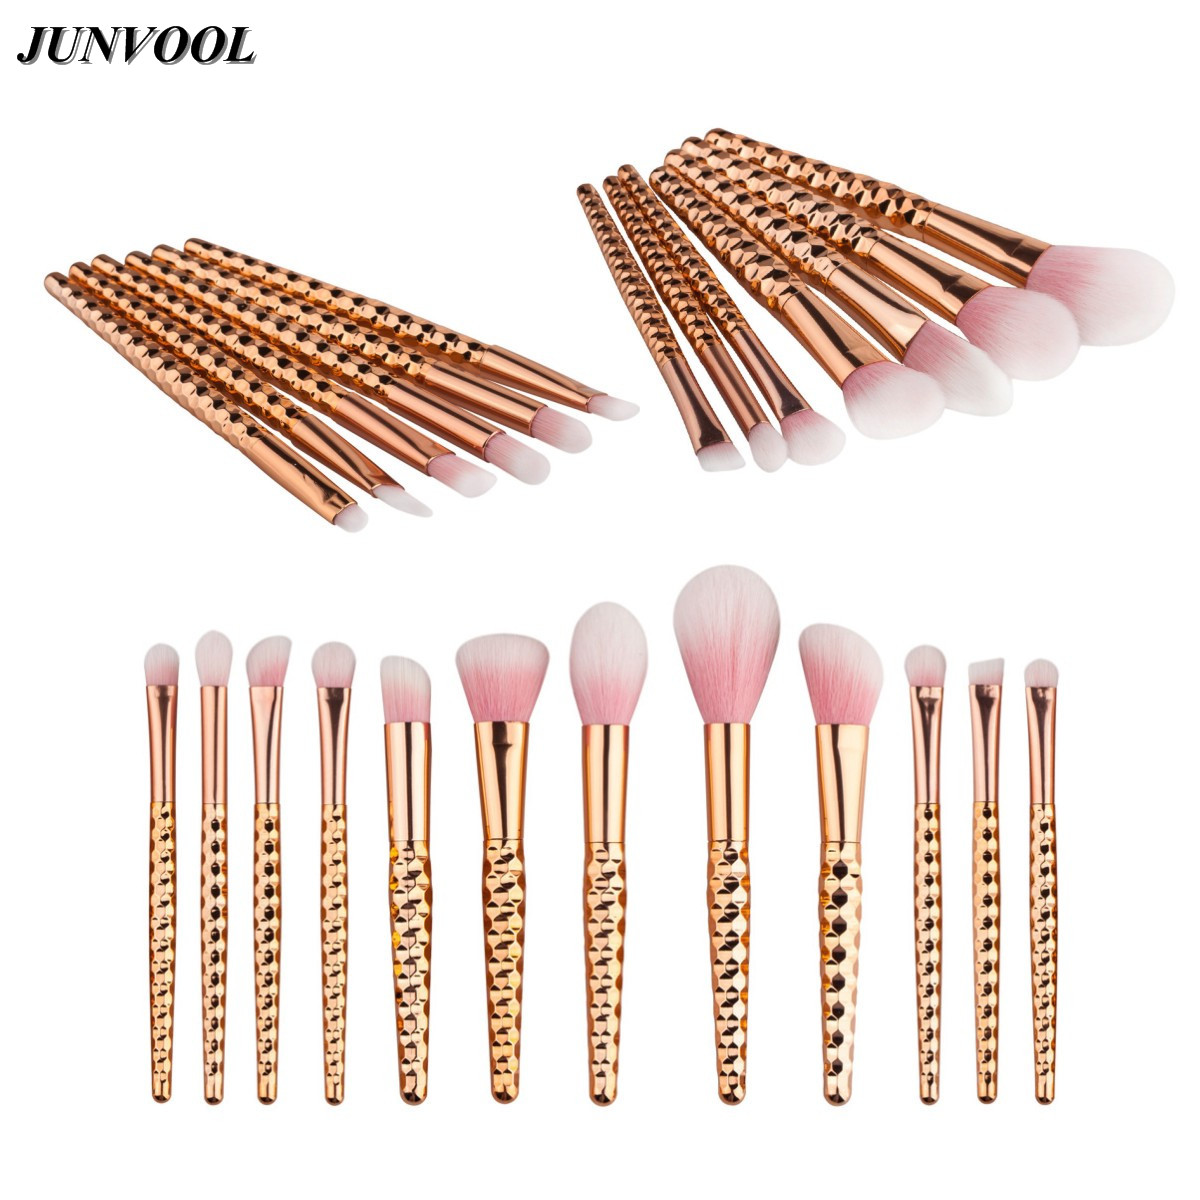 Grasp Handle Rose Gold Makeup Brushes Kit Set for Eyeshadow Contour Top Soft Pink Fiber Hair Cosmetics Make Up Brush Beauty Tool new store free shipping beauty and the beast rose gold makeup brush cosmetic brush woman gift eyeshadow contour concealer